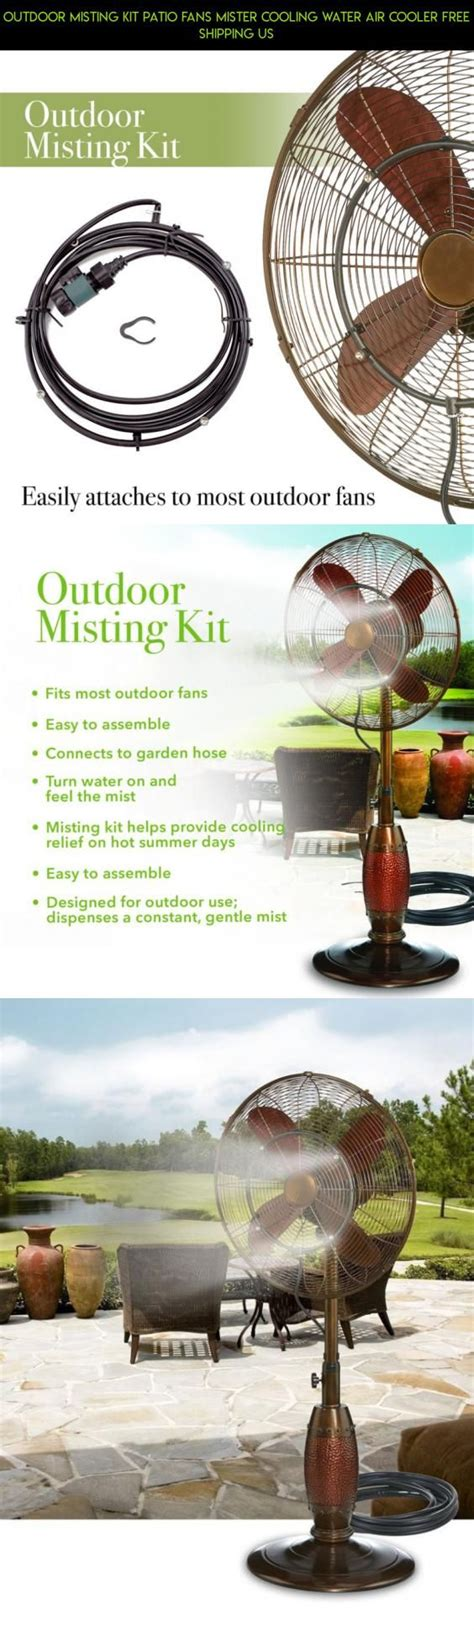 3 qualitynet help desk number 100 portable patio